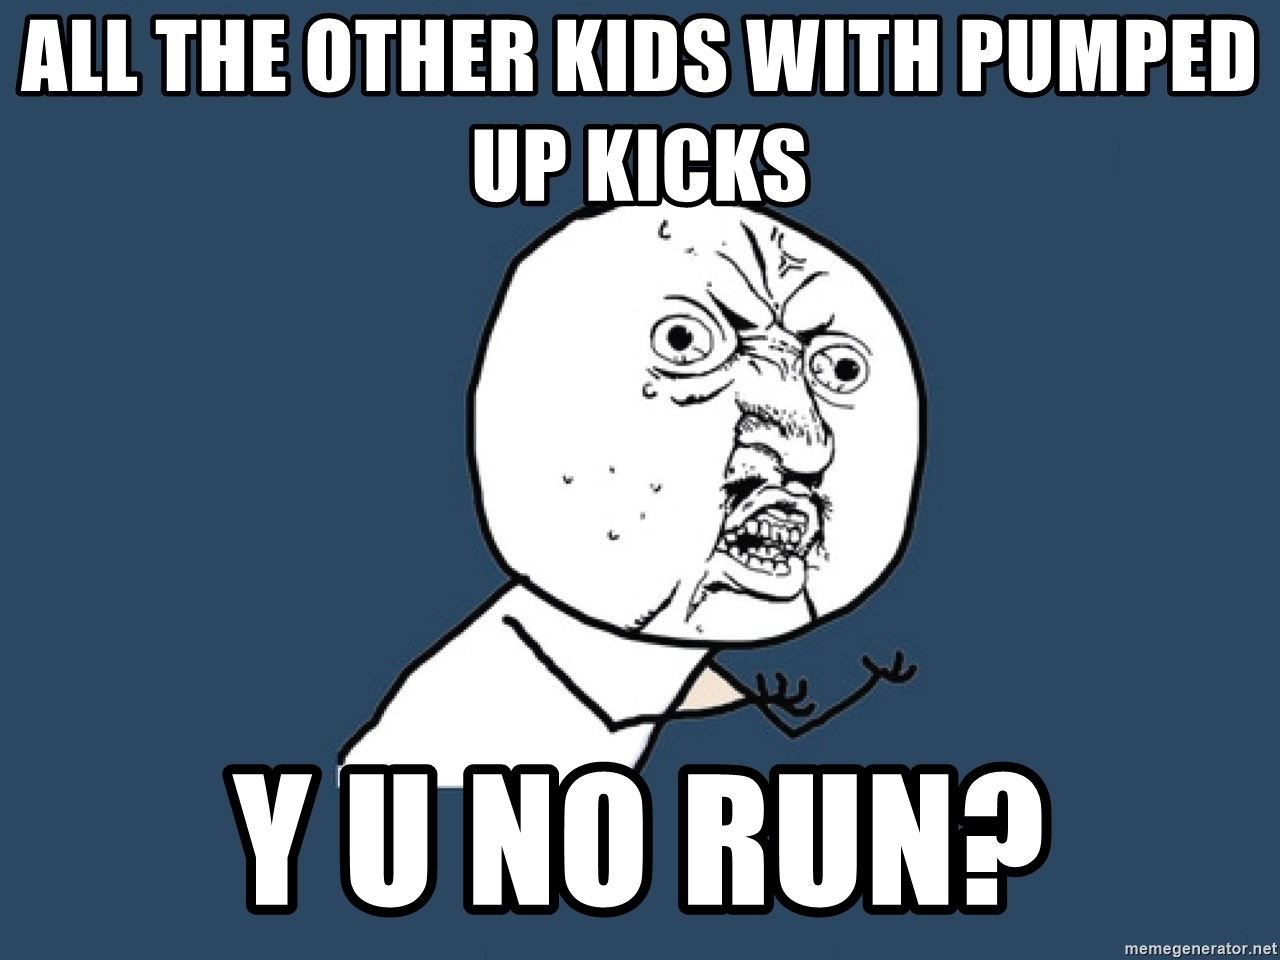 Y U No - alL THE OTHER KIDS WITH PUMPED UP KICKS Y U NO RUN?